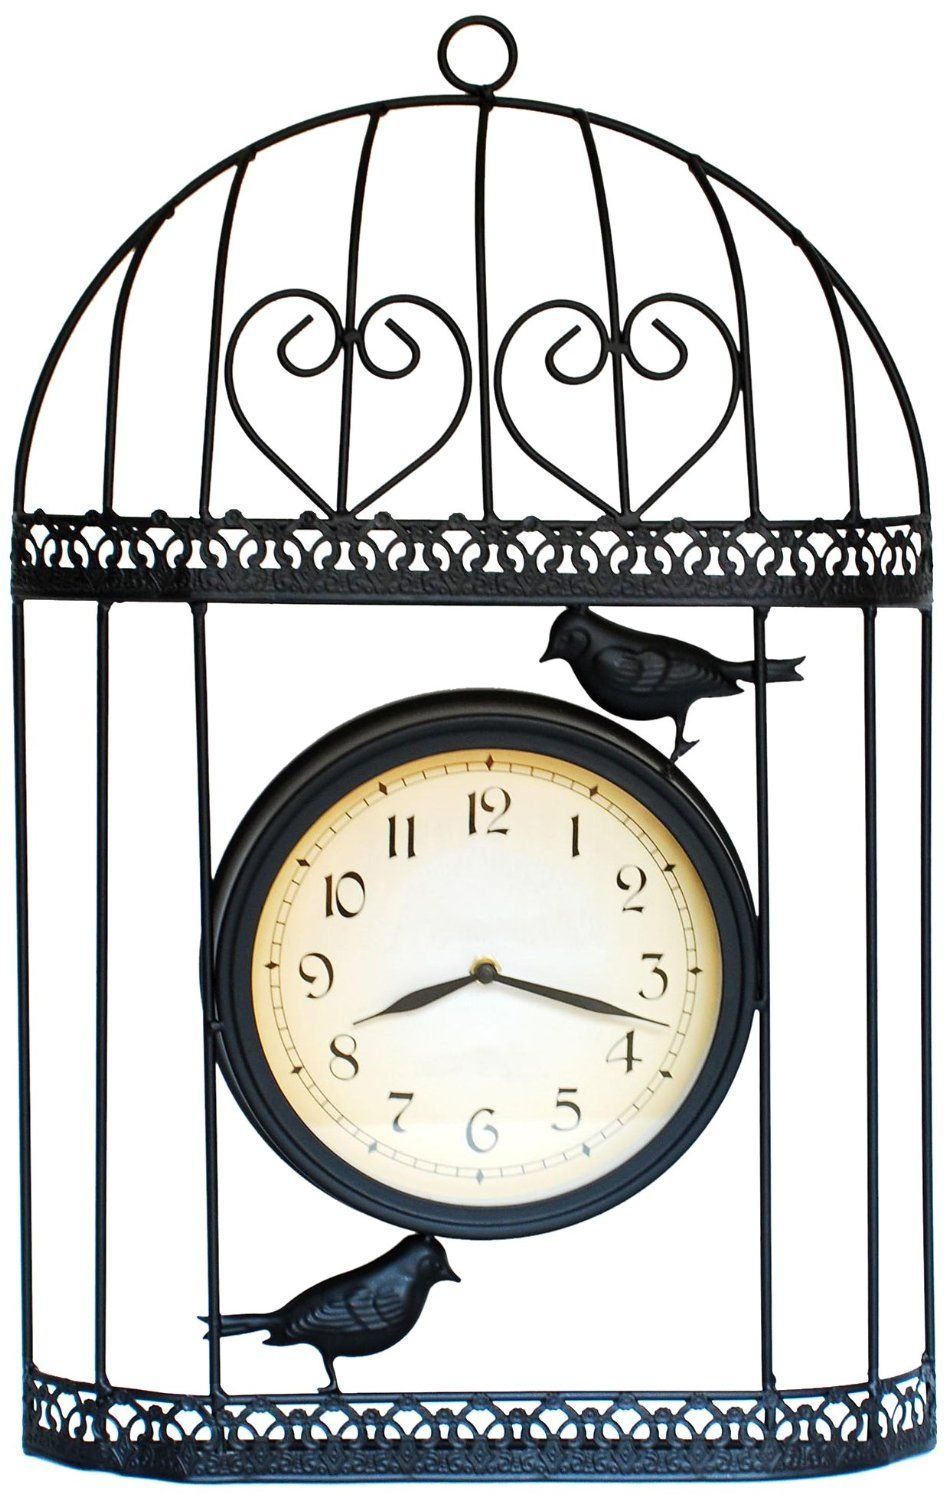 Bird cage clock by ashton sutton on sale for the home pinterest